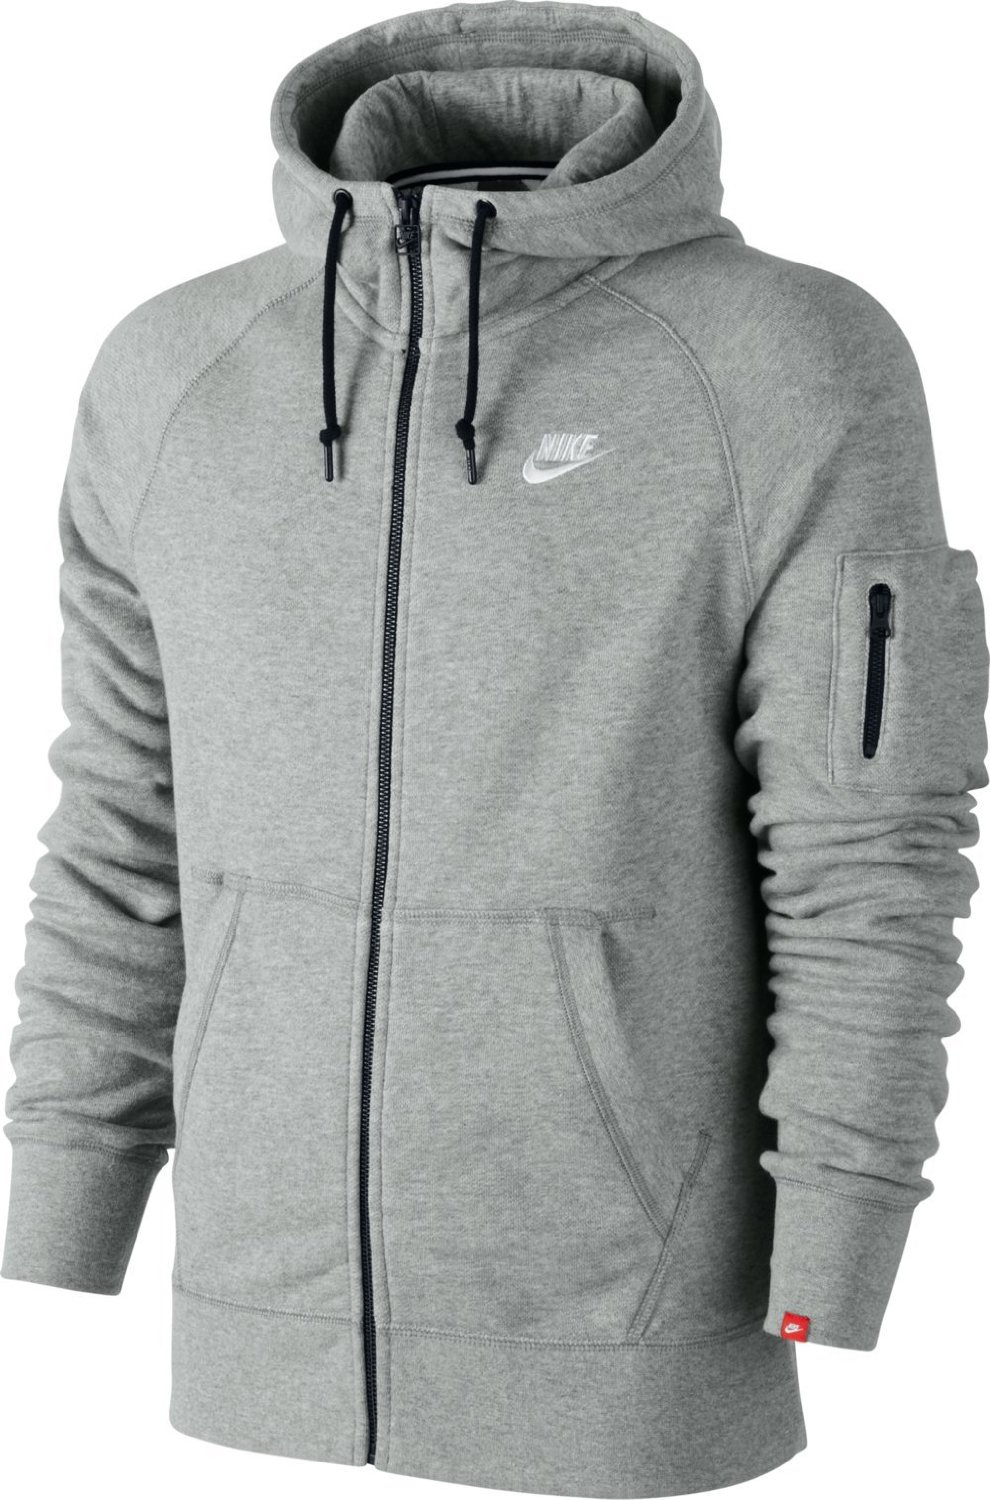 nike herren jacke aw77 fleece hoody sport freizeit. Black Bedroom Furniture Sets. Home Design Ideas